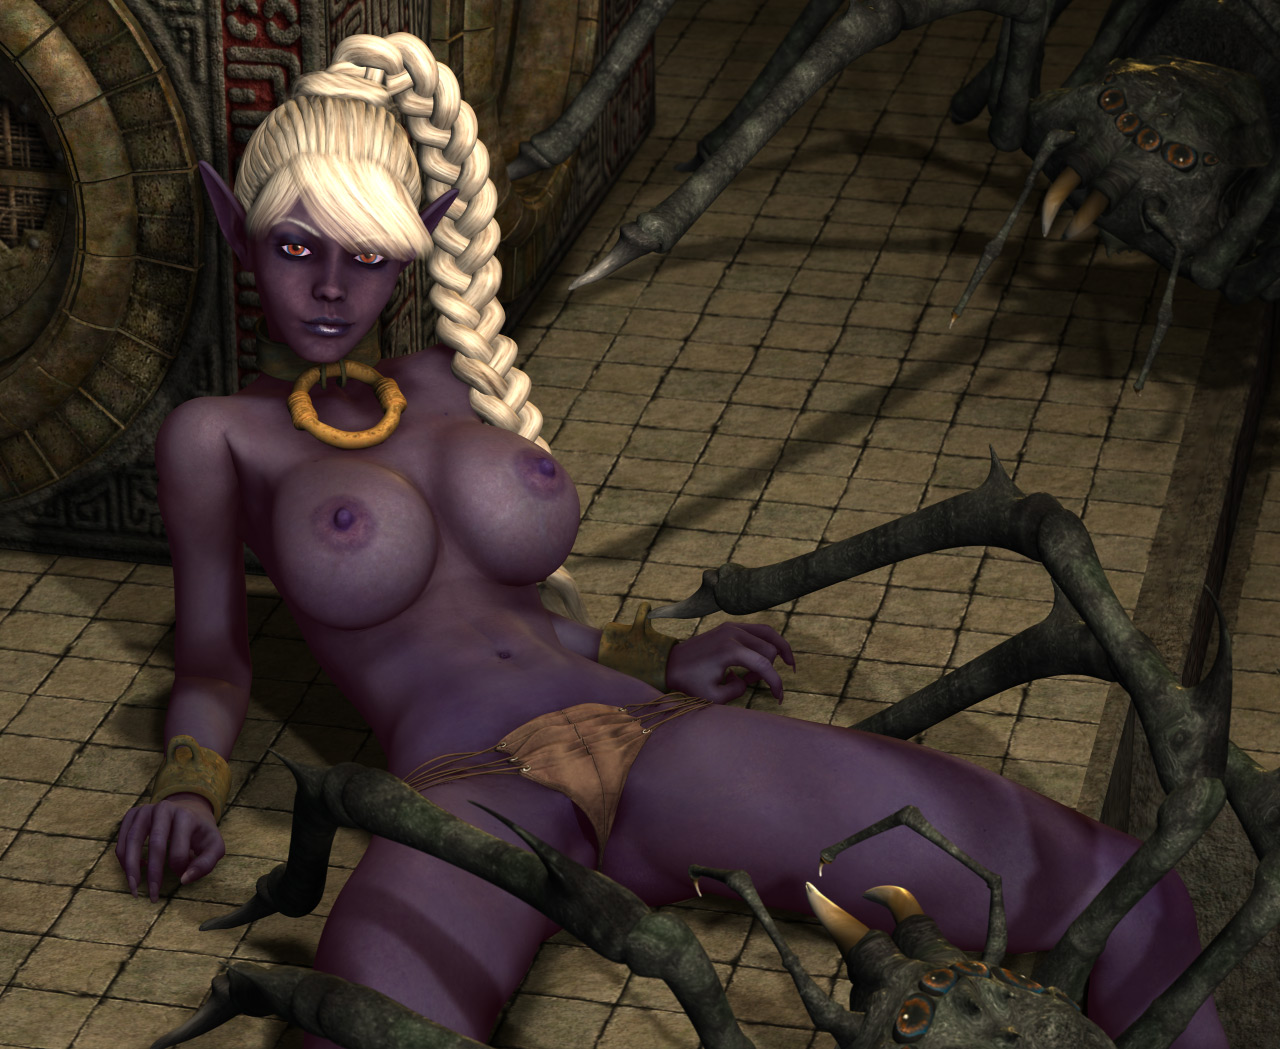 Night elf hentai pictures exposed image